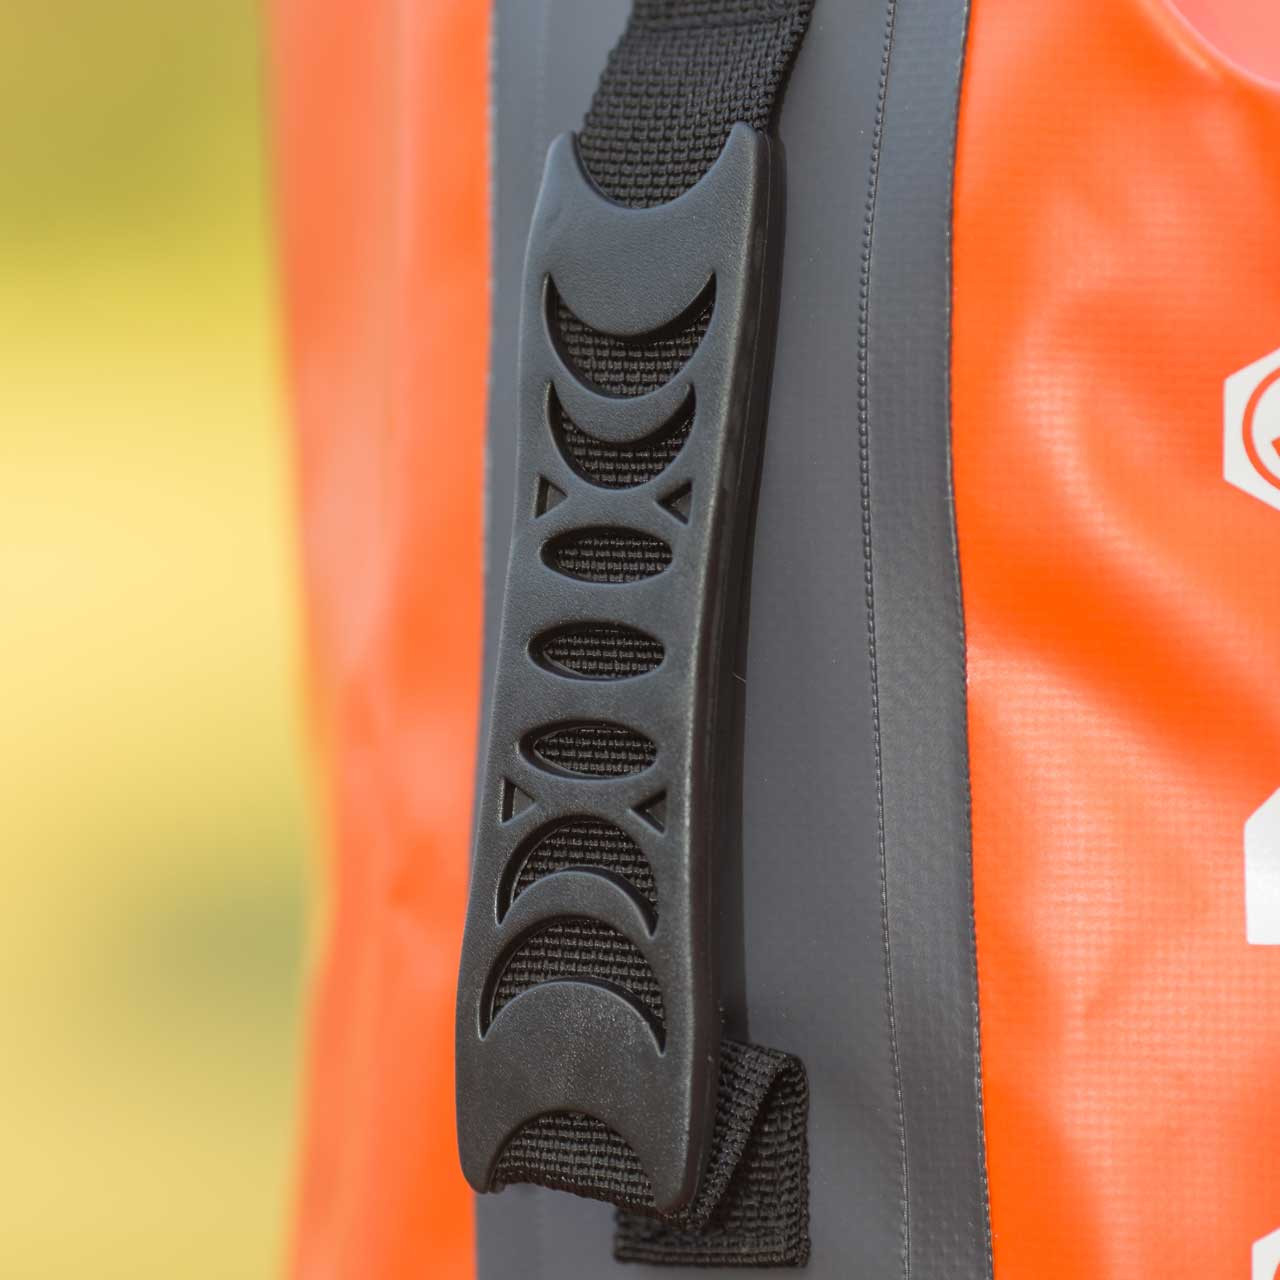 Close up of the orange Tuff Tote Bag's handle